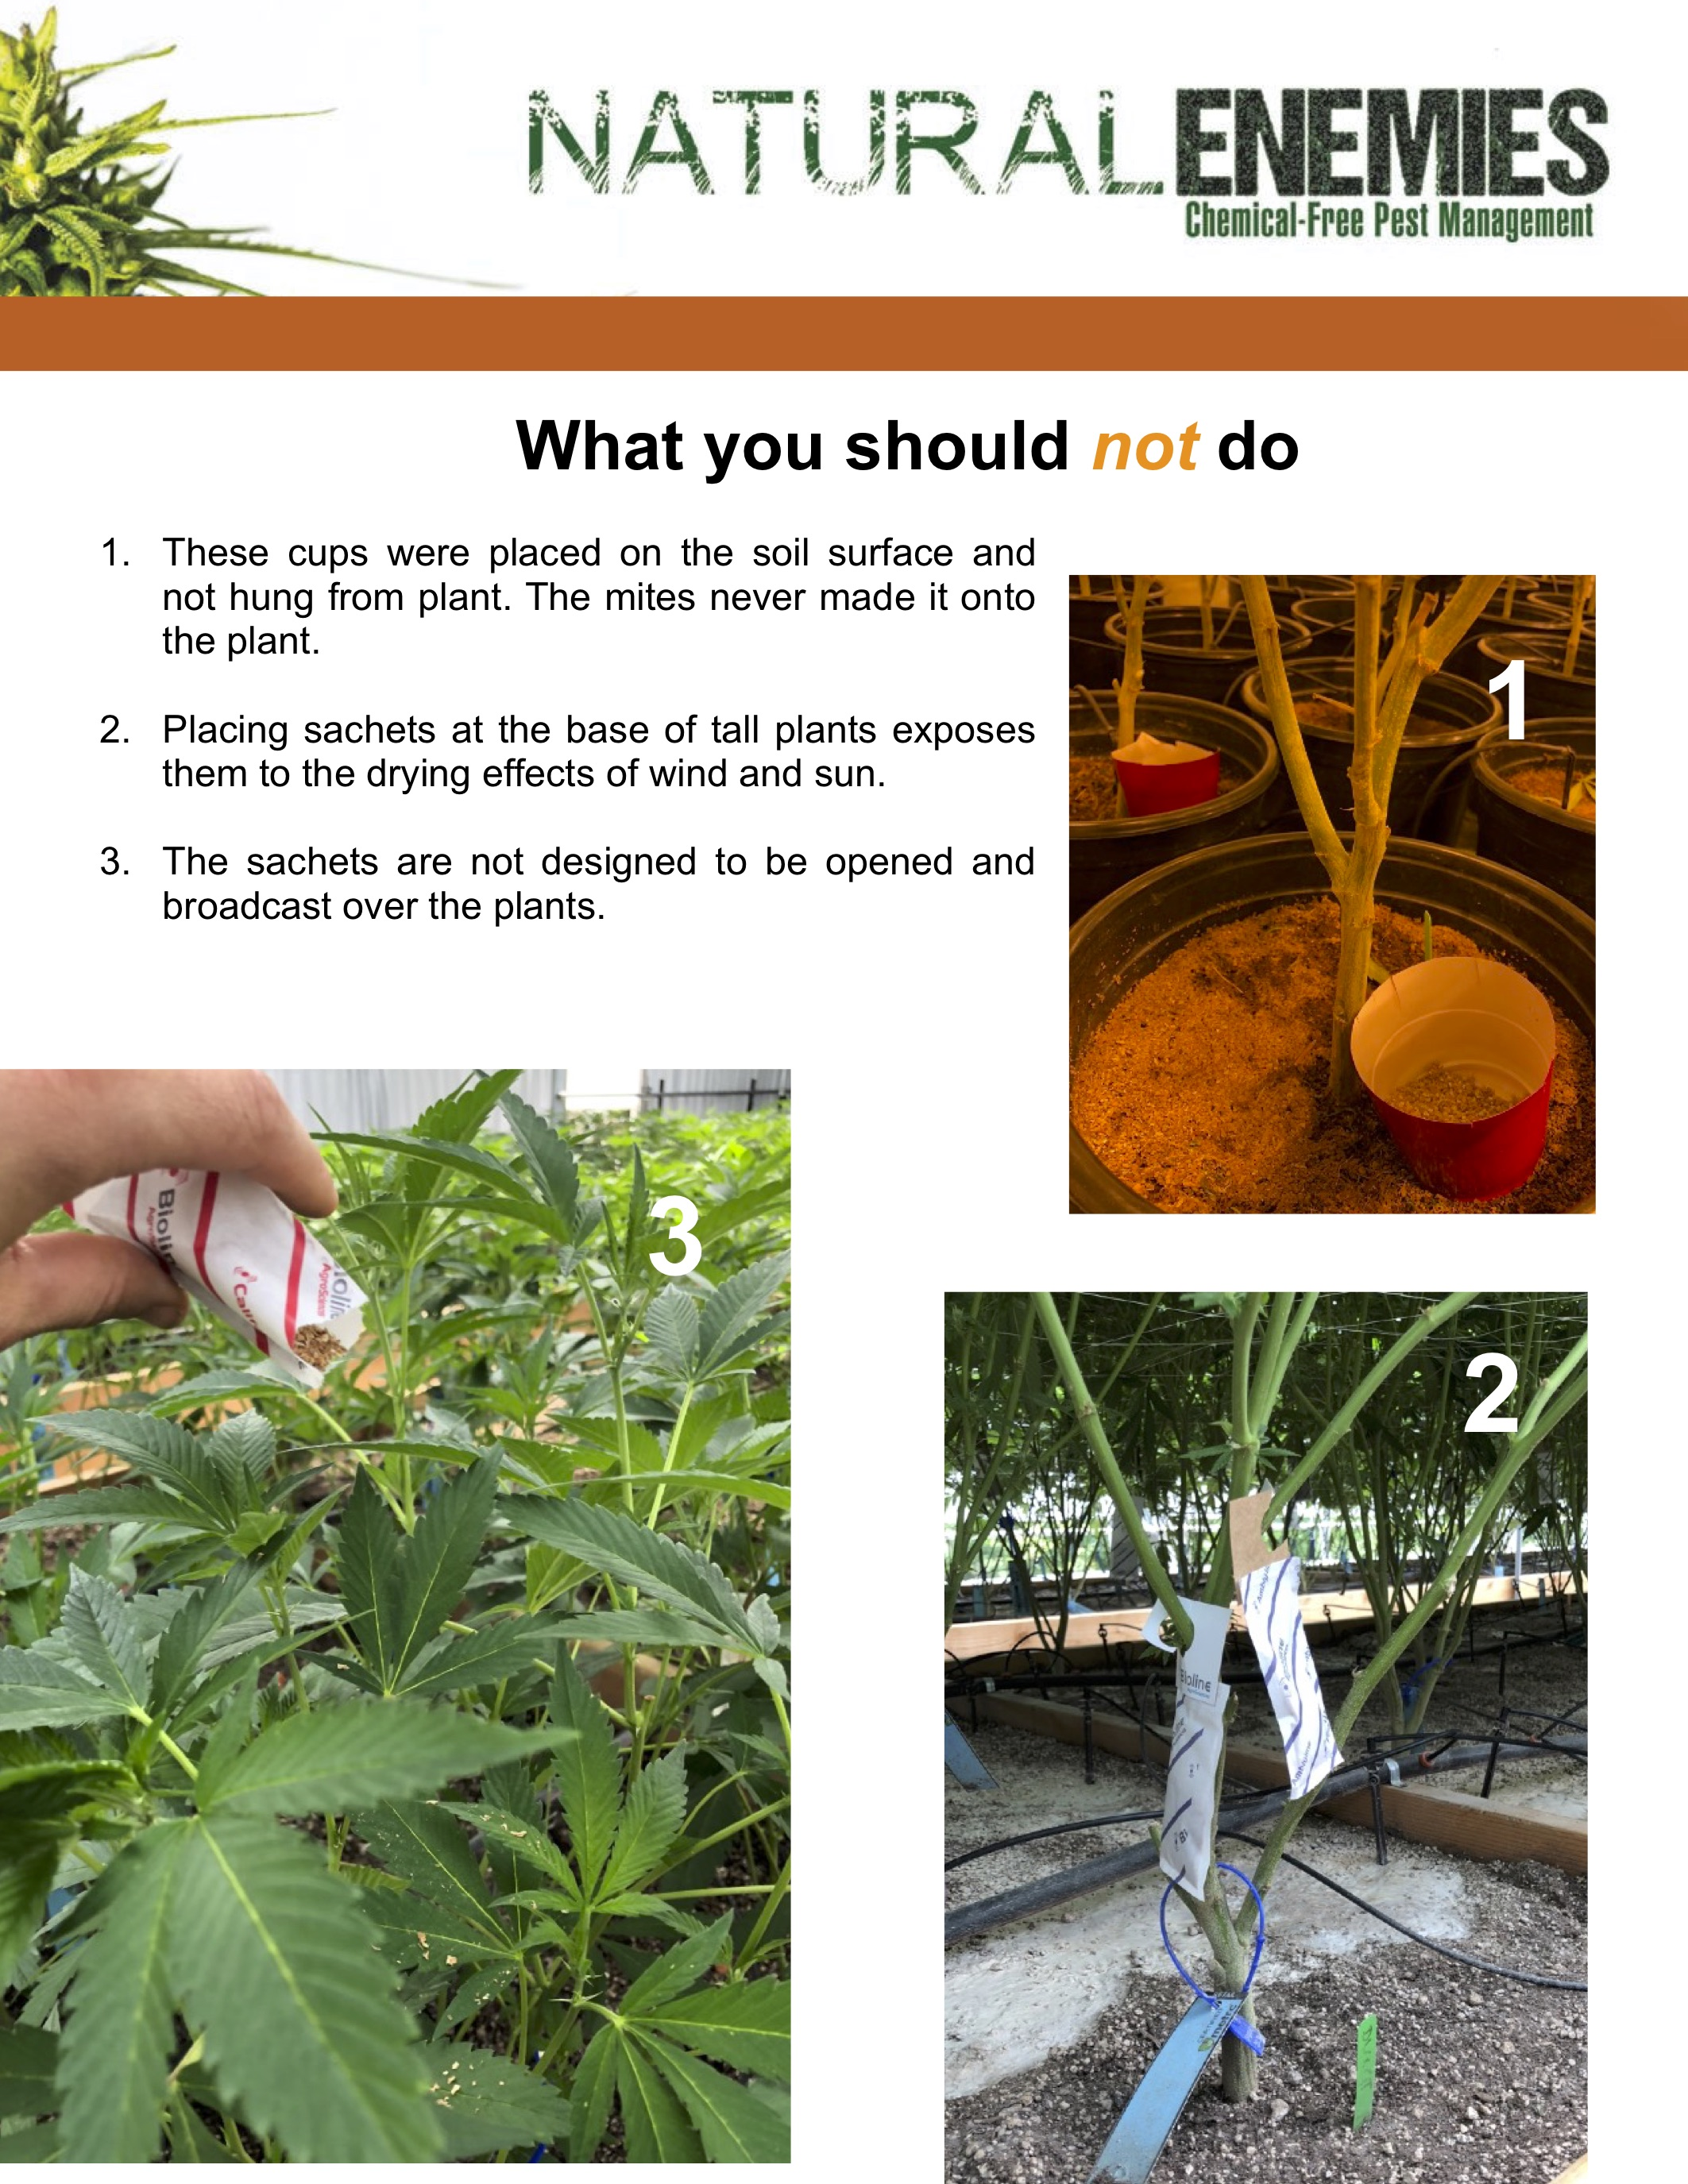 application-directions-for-mites-what-not-to-do.jpg